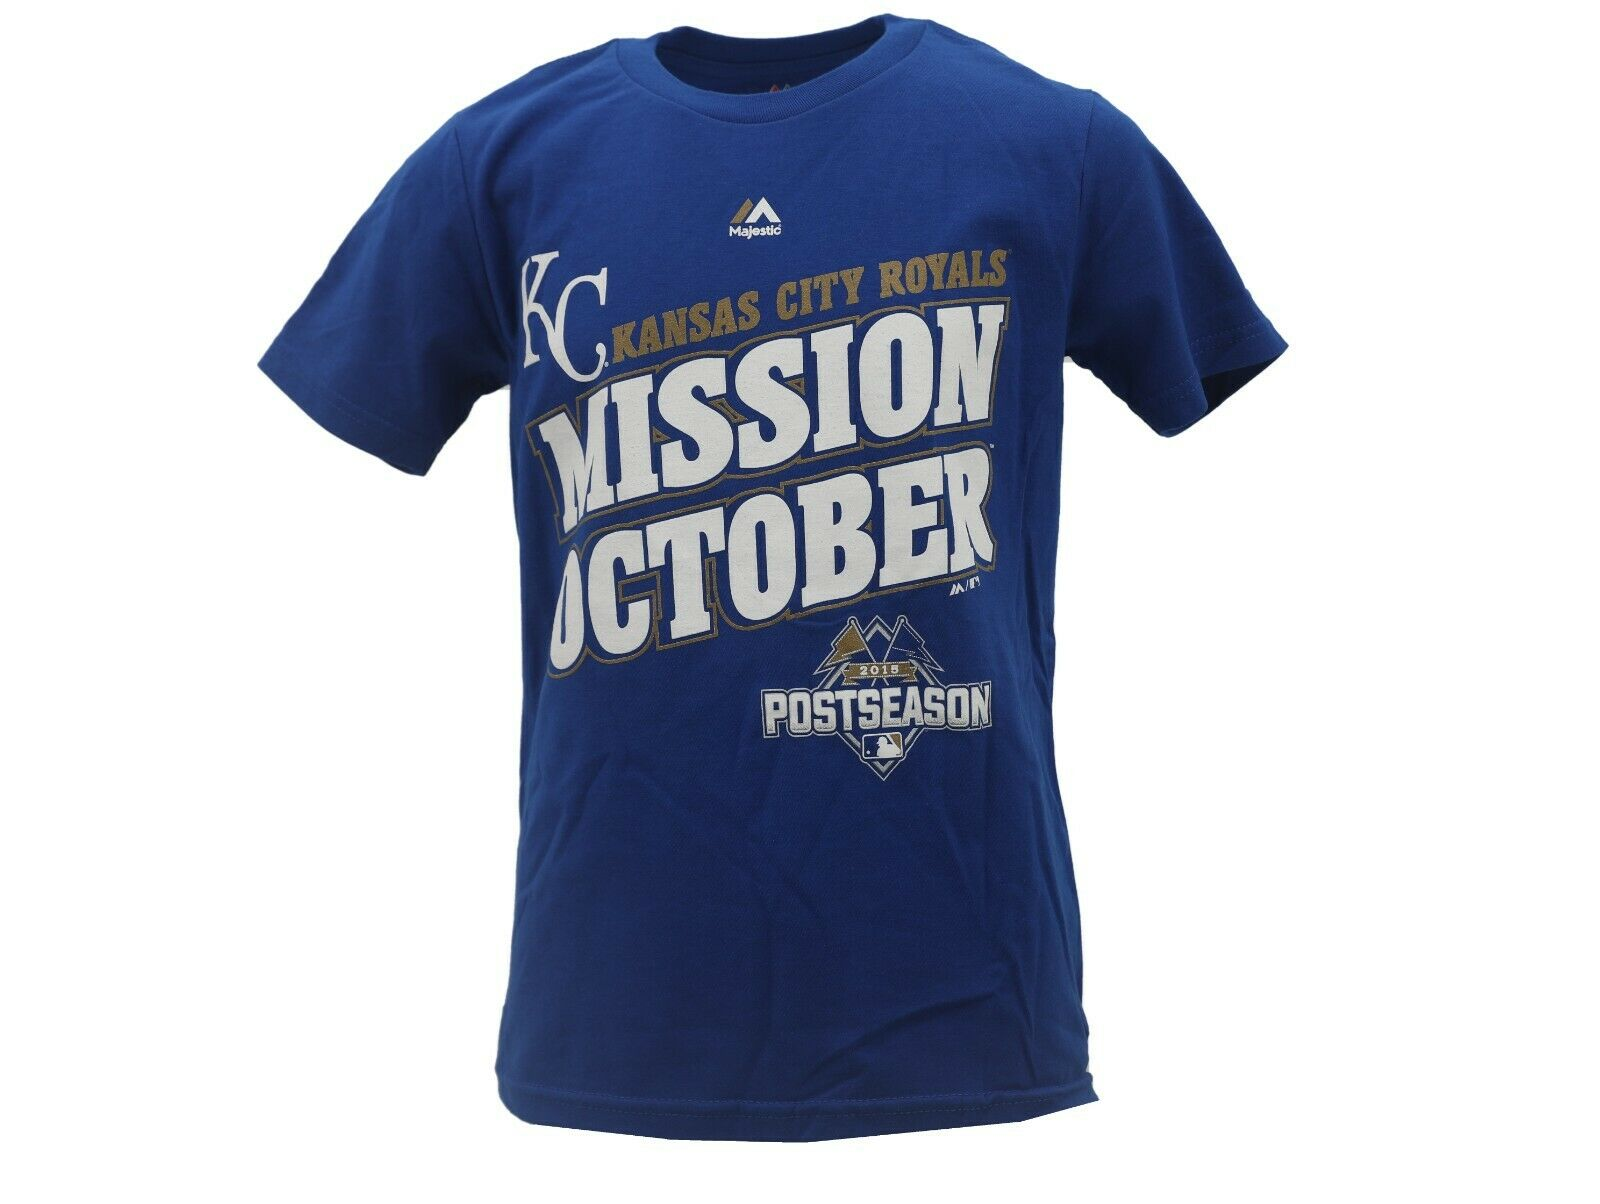 27830b85 Kansas City Royals Official MLB Majestic Kids Youth Size 2015 Postseason  T-Shirt